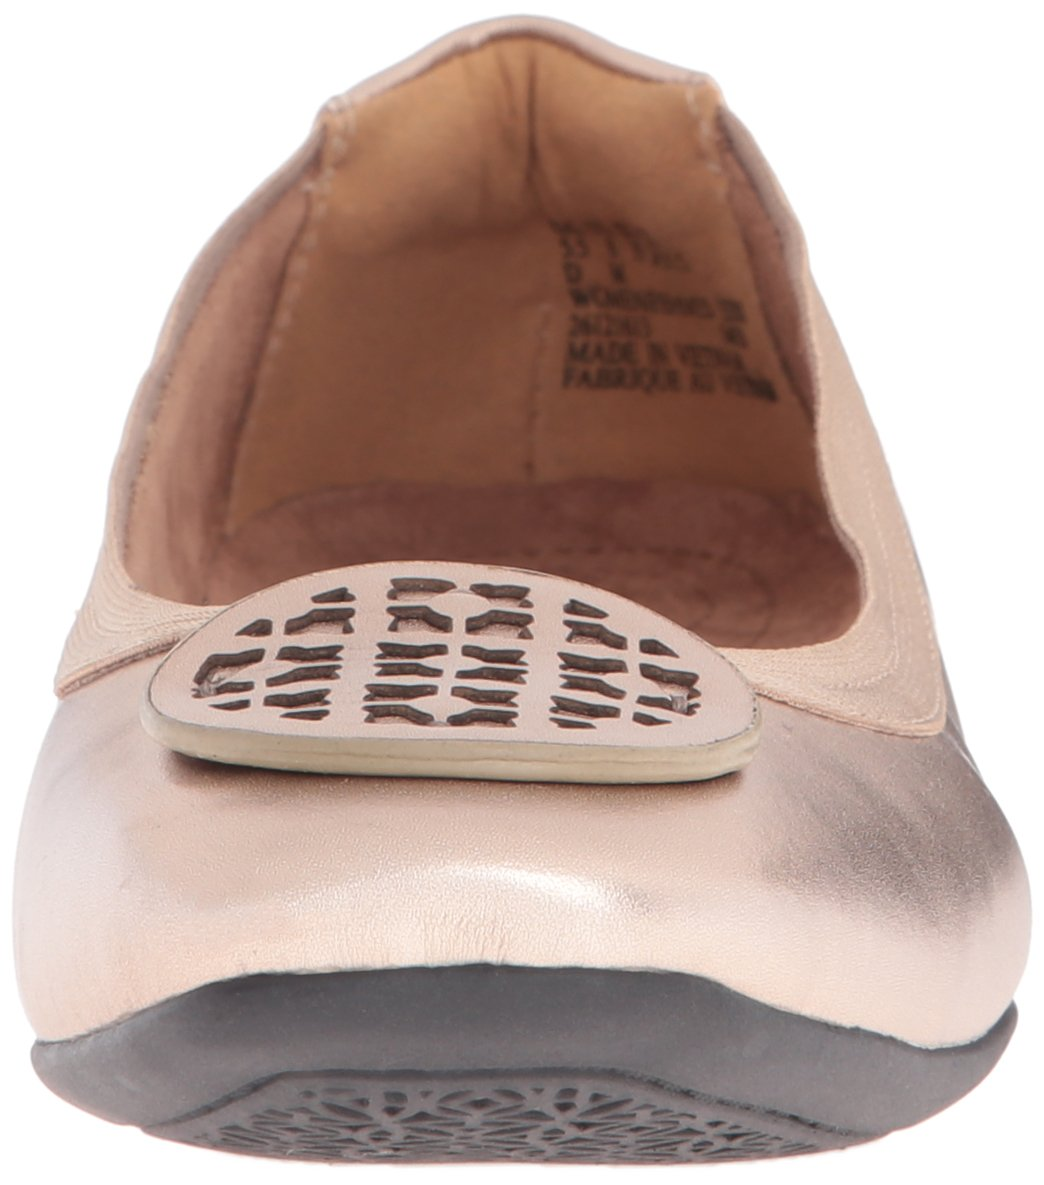 Clarks Women's Candra Blush Flat, Gold/Metallic, 10 M US by CLARKS (Image #4)